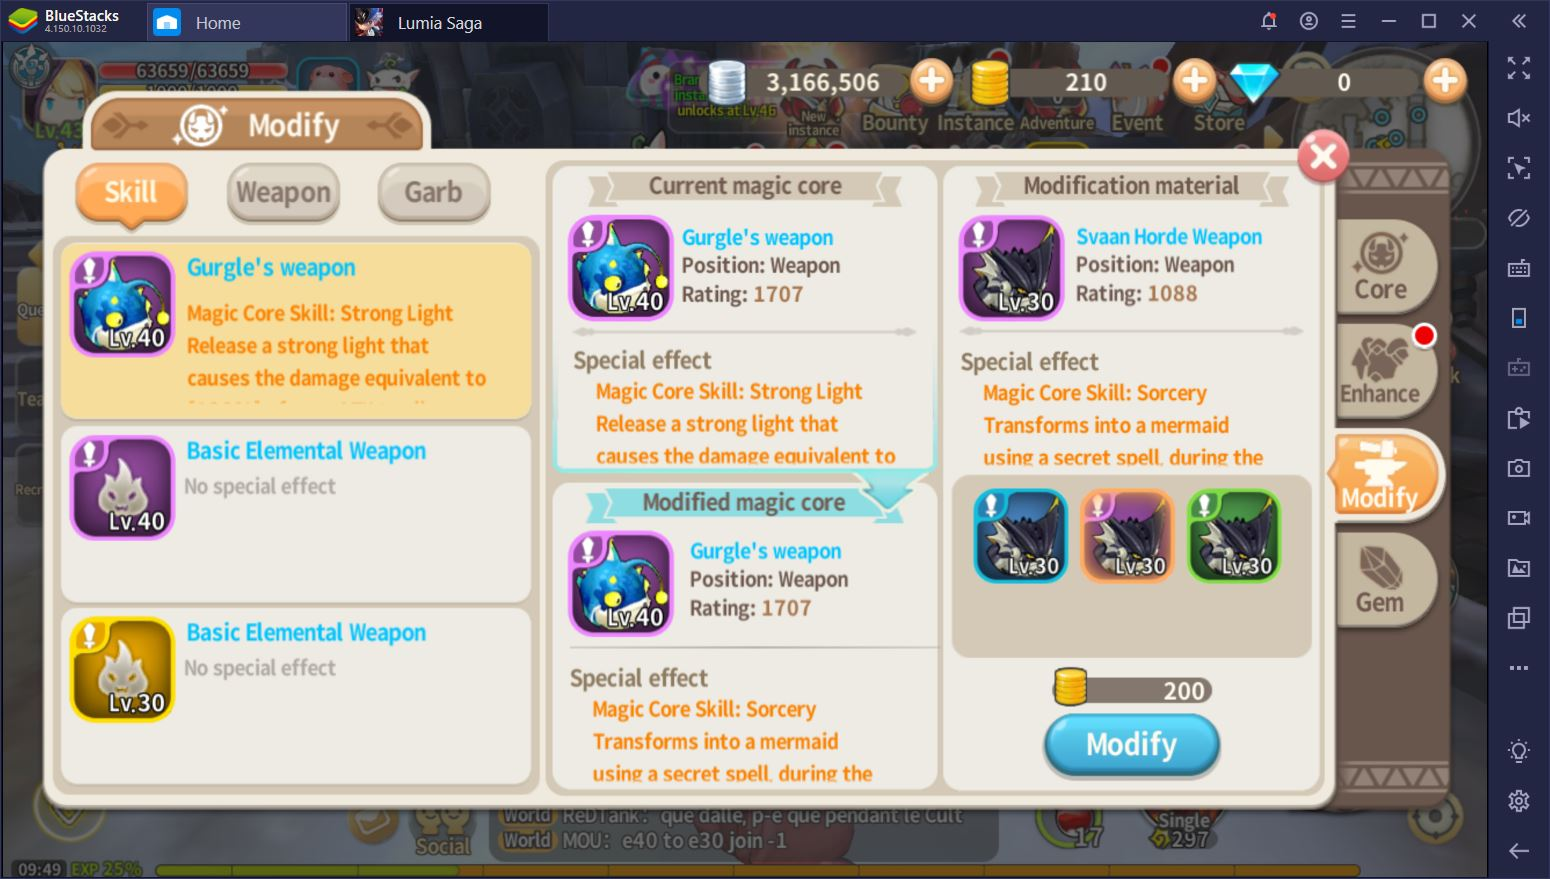 Lumia Saga on PC: How to Boost Your Combat Rating Quickly